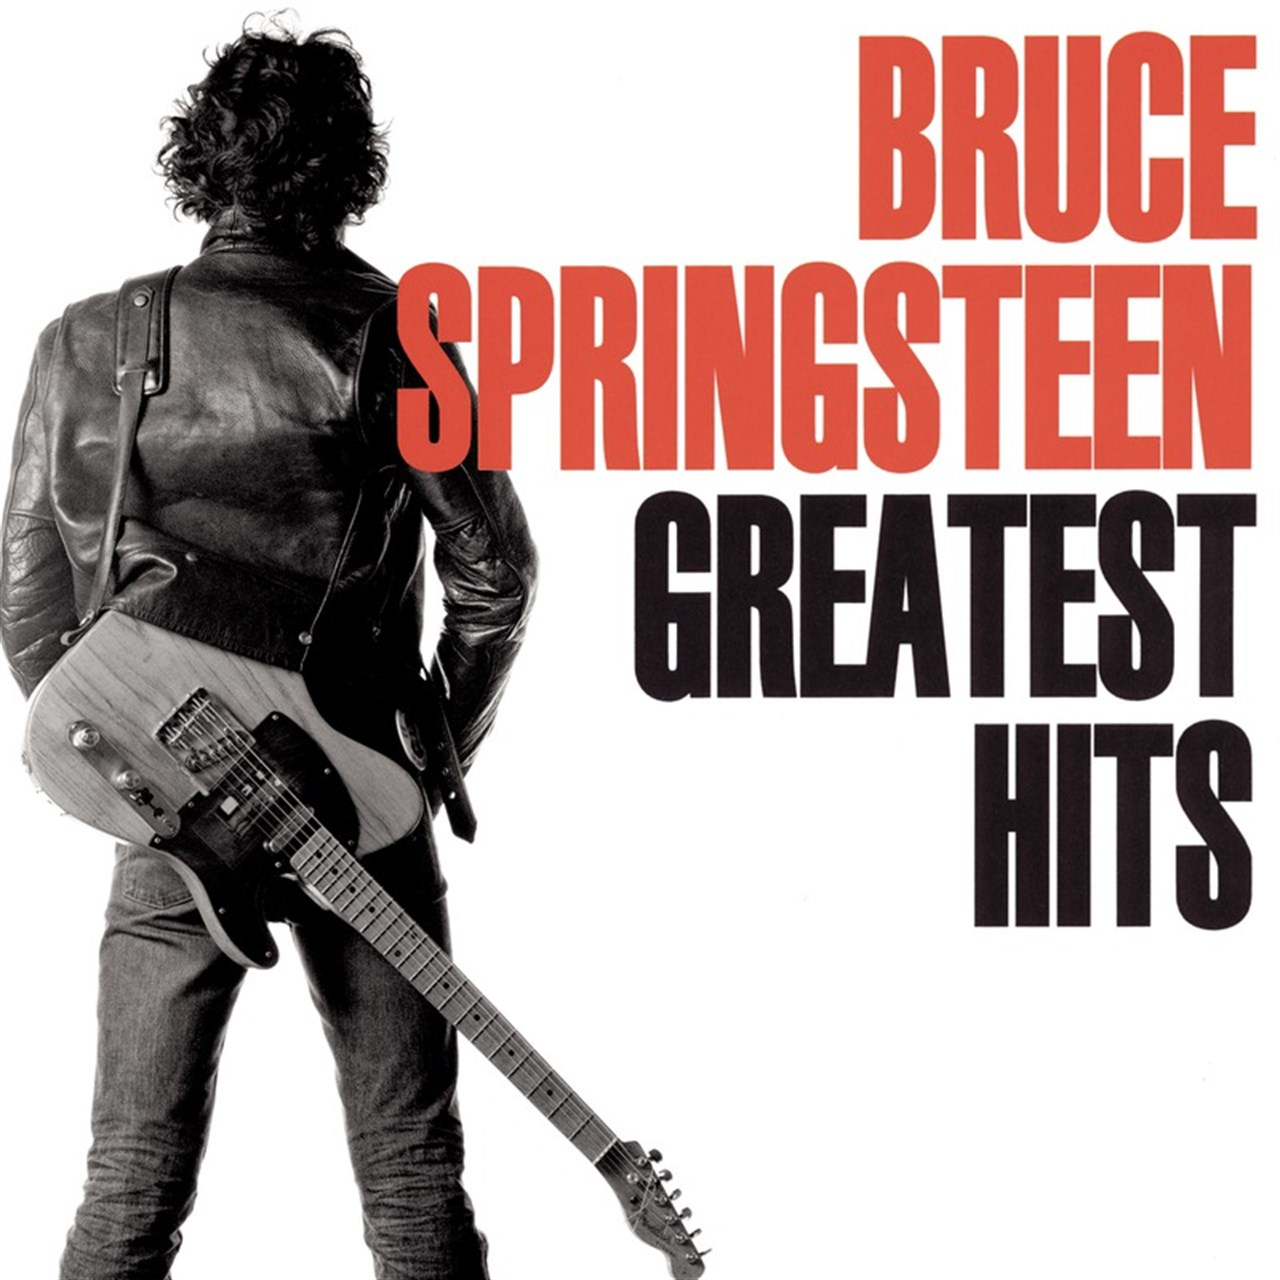 Bruce Springsteen Bruce Springsteen - Greatest Hits (2 LP) цена и фото